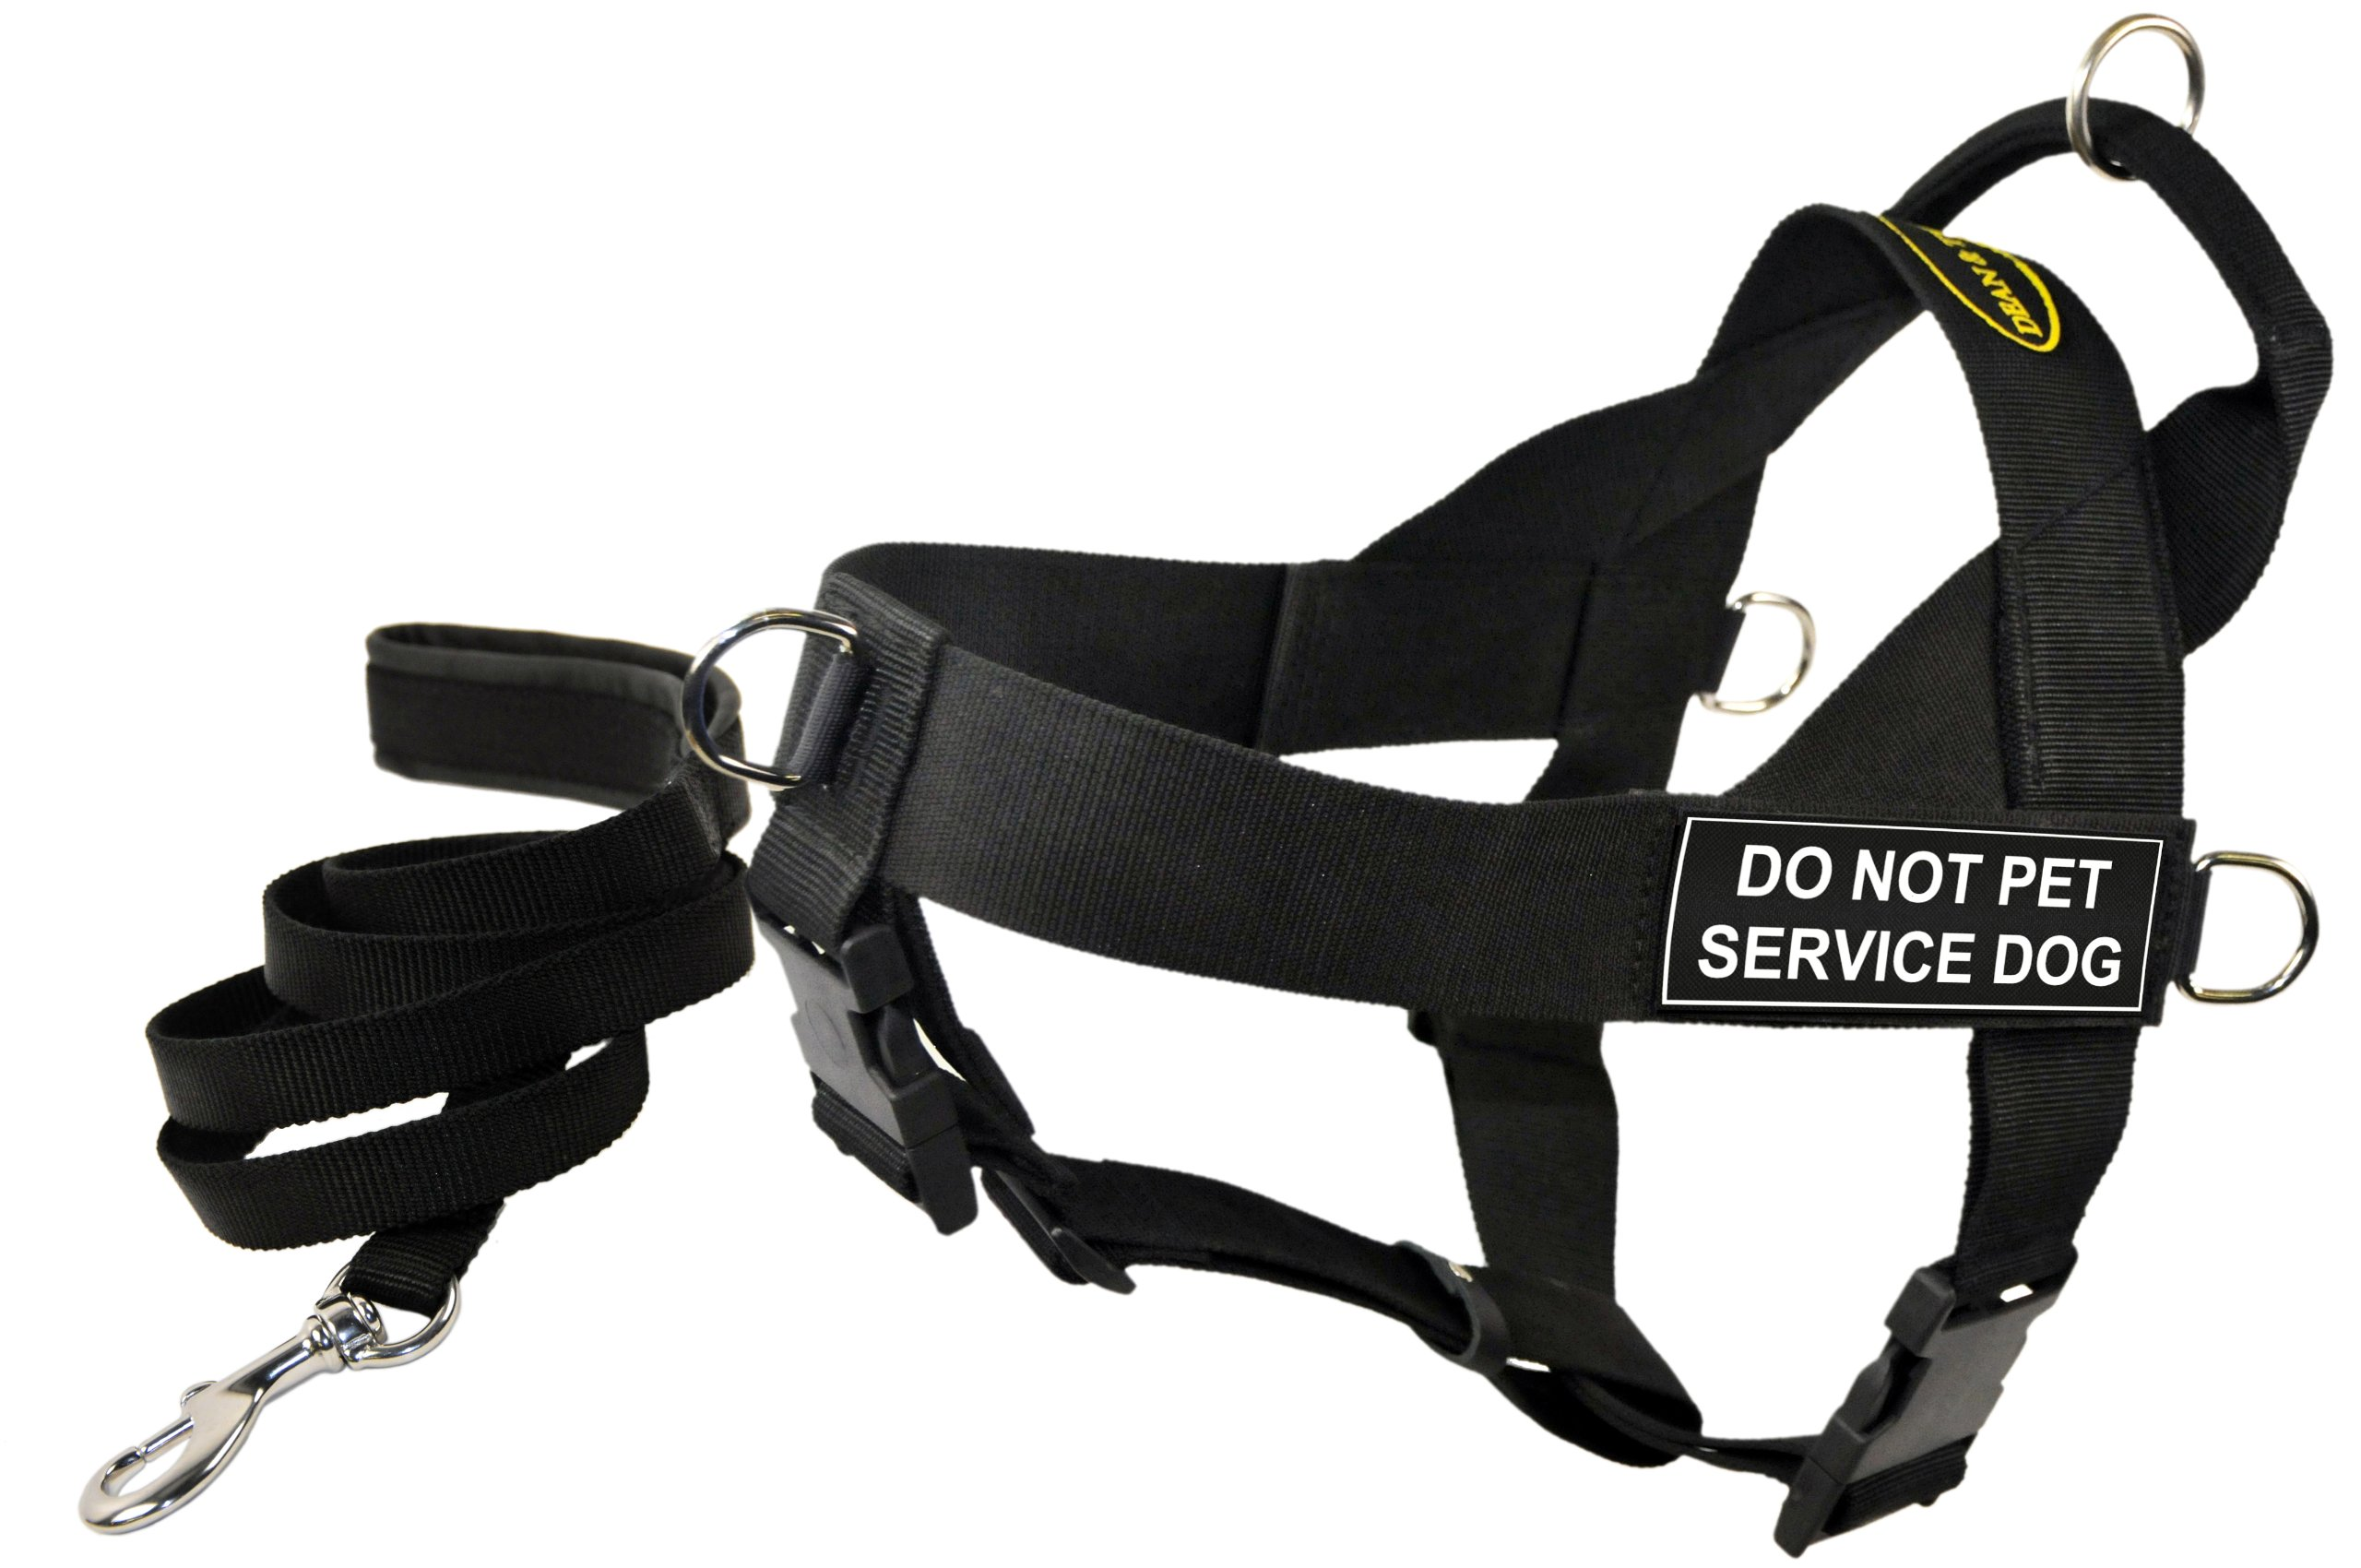 Dean and Tyler Bundle One DT Universal Harness, Do Not Pet Service Dog, Small (24, 27) + One Padded Puppy Leash, 6-Feet Stainless Snap, Black